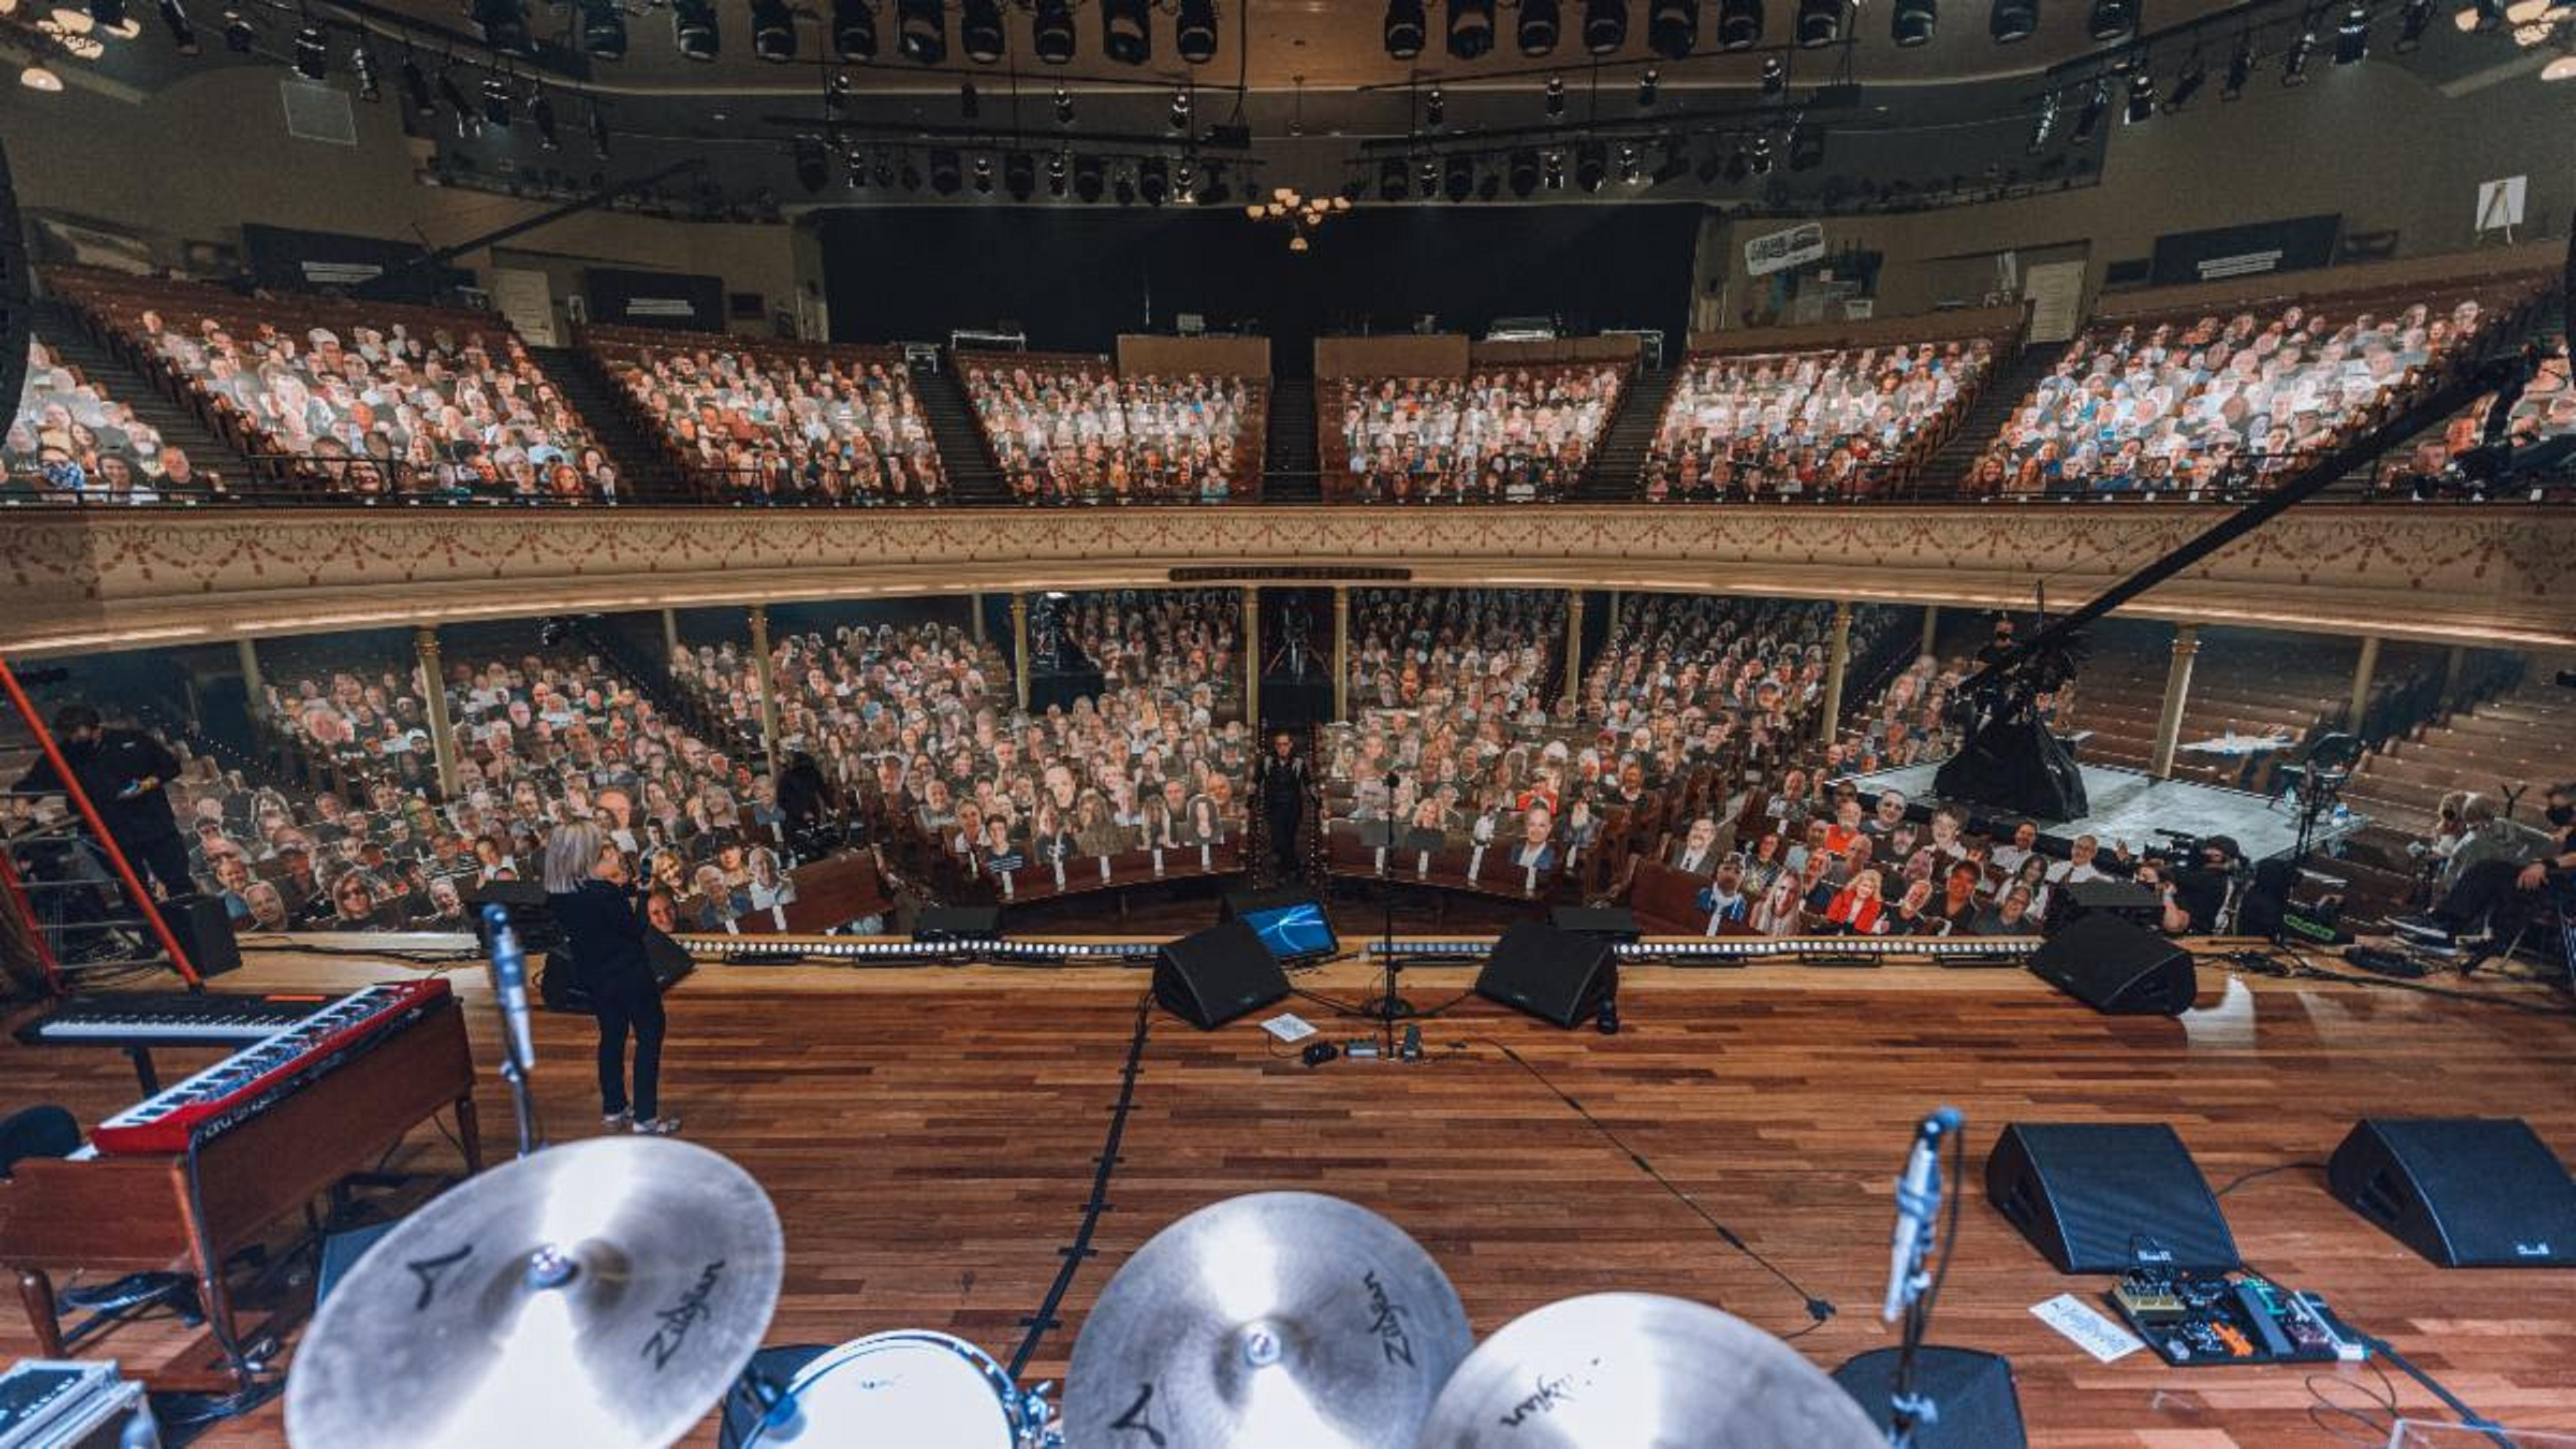 Joe Bonamassa's live concert reaches 44 countries